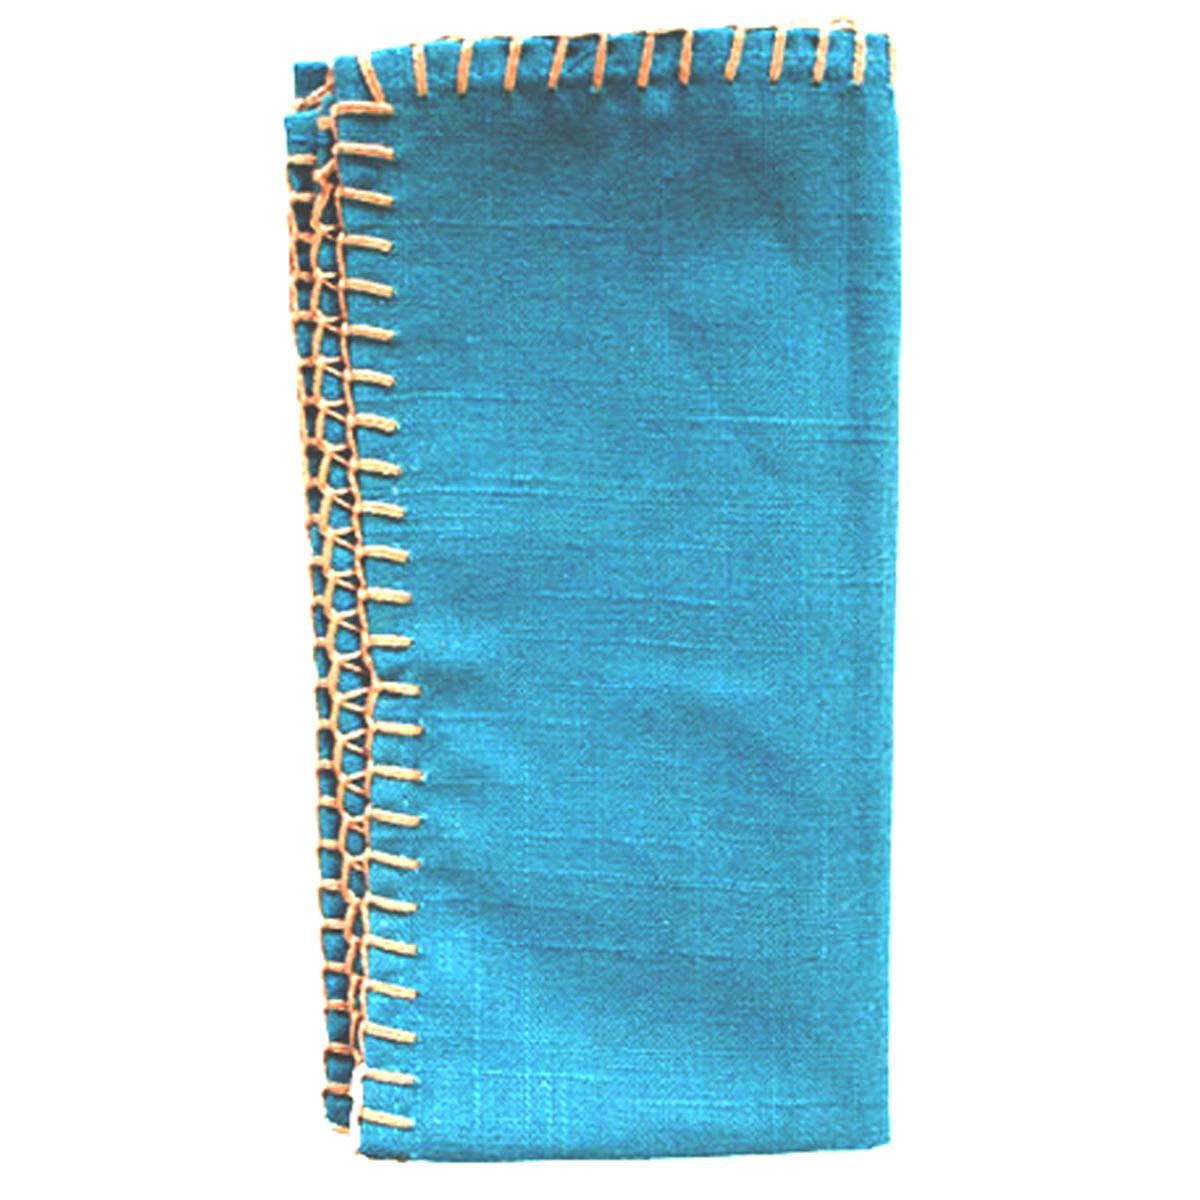 Washed Denim Napkins - Set of 4